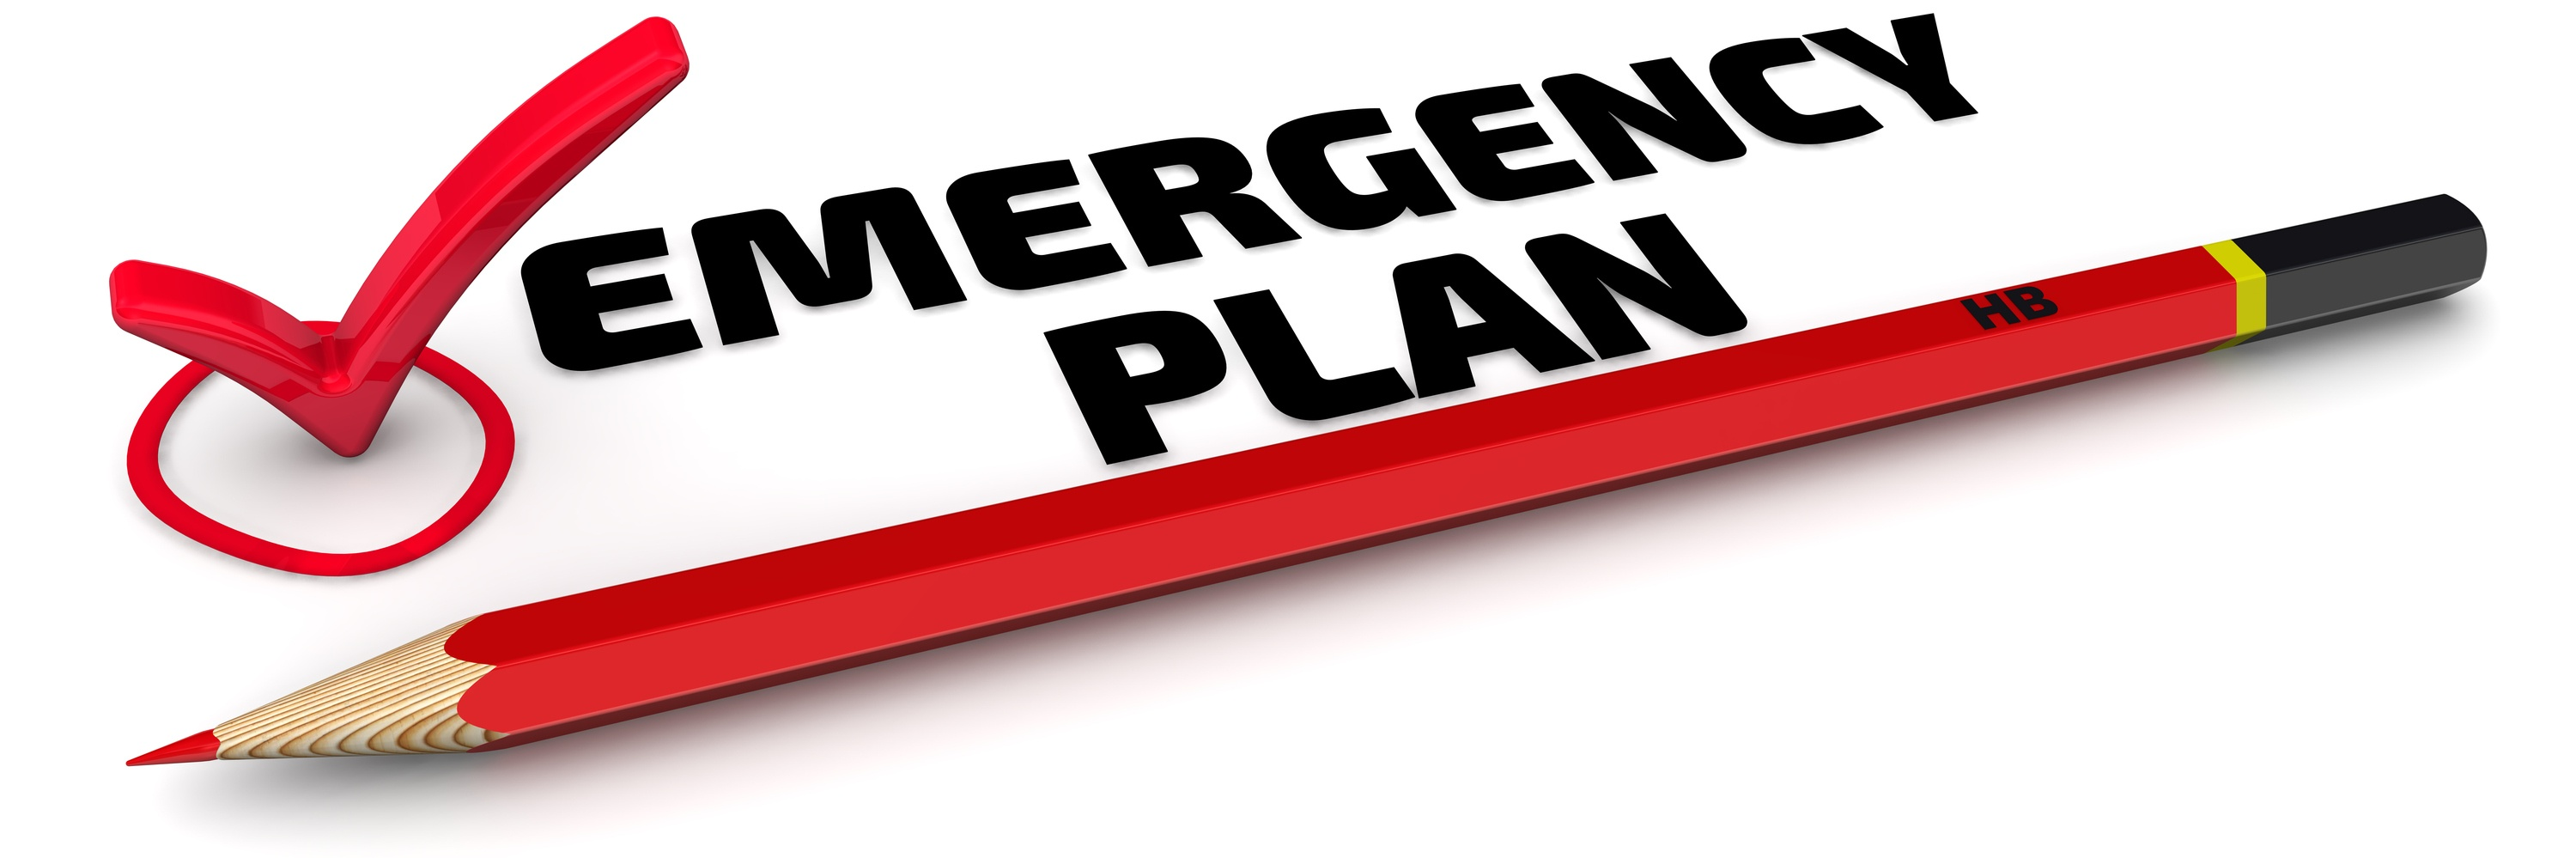 Emergency Plan 521088758.jpg